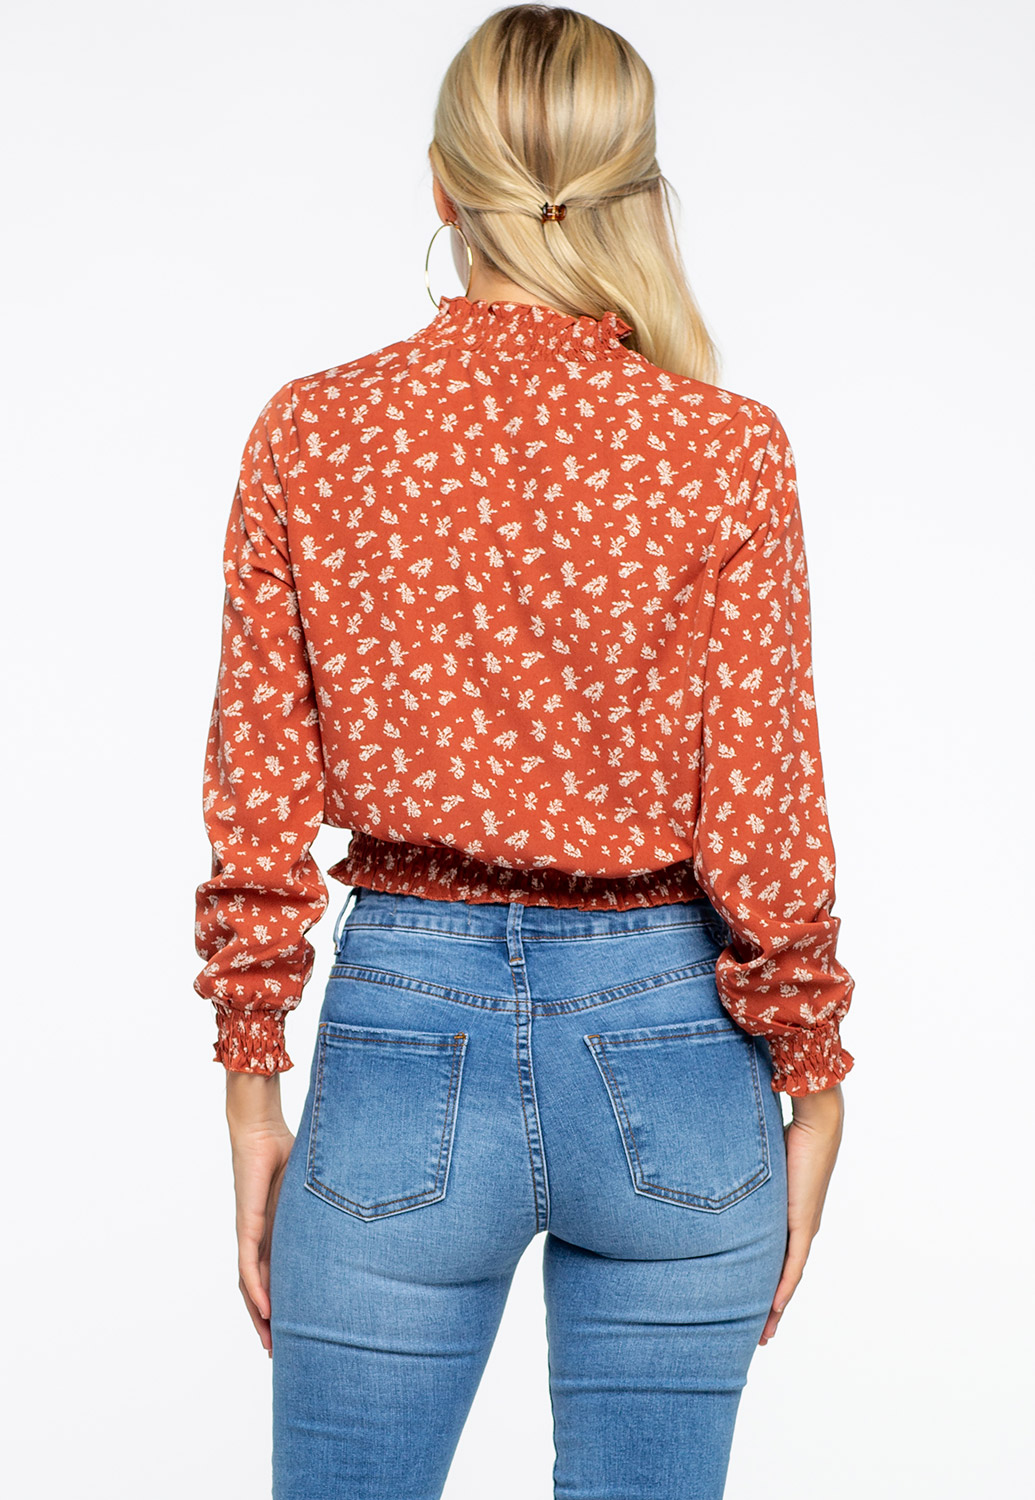 High-Neck Floral Long Sleeve Blouses With Ruffles